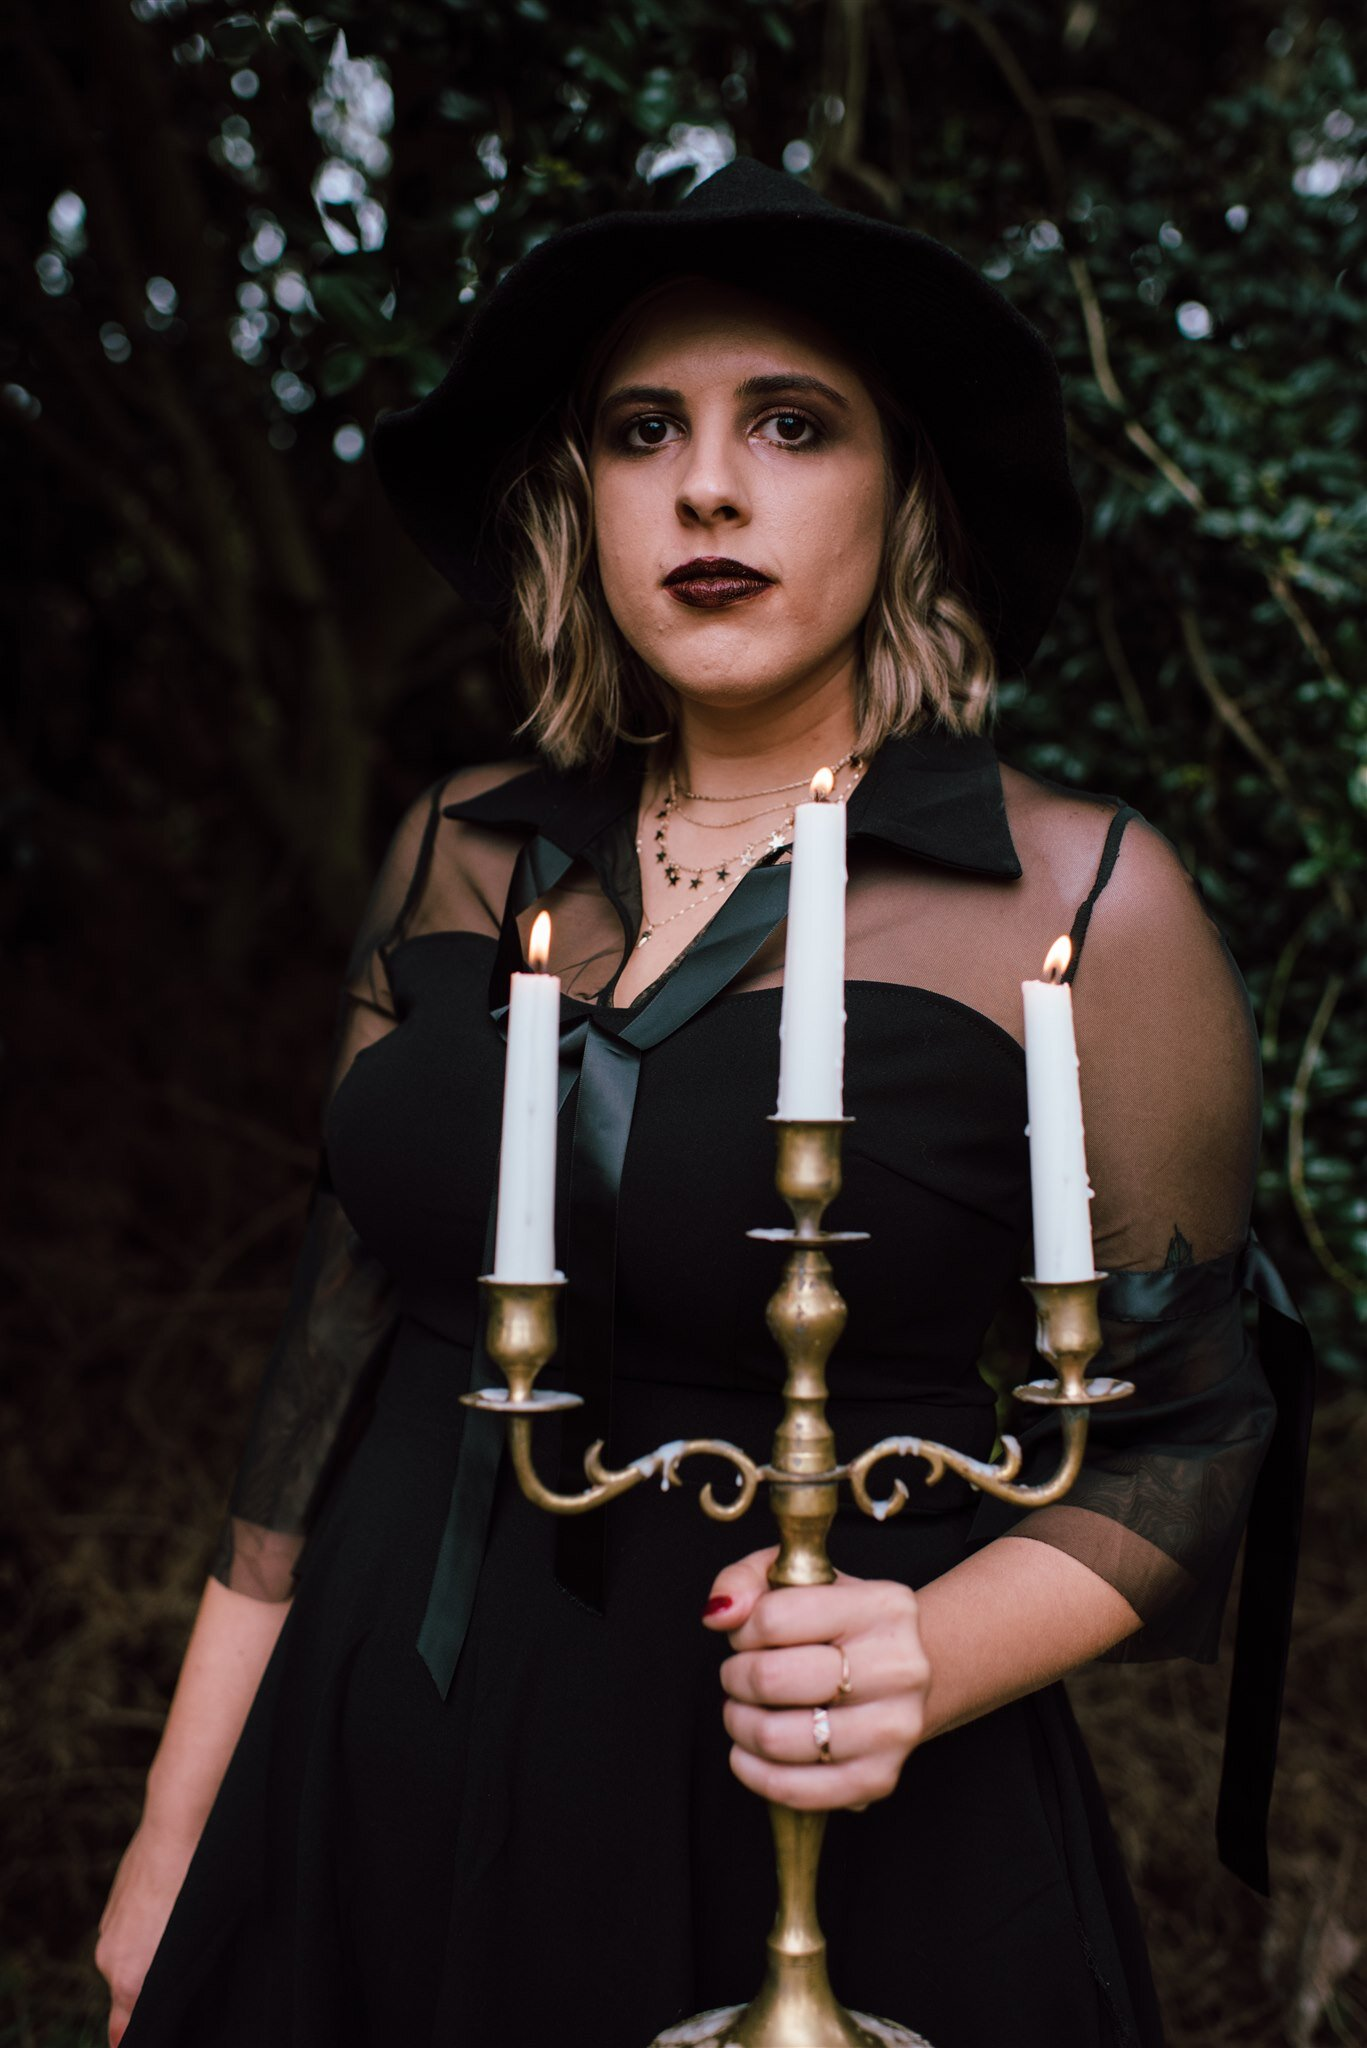 Halloween Editorial - Witch Aesthetic - Witch Editorial - Coven Photo Shoot - Halloween Photo Shoot - Halloween Inspired